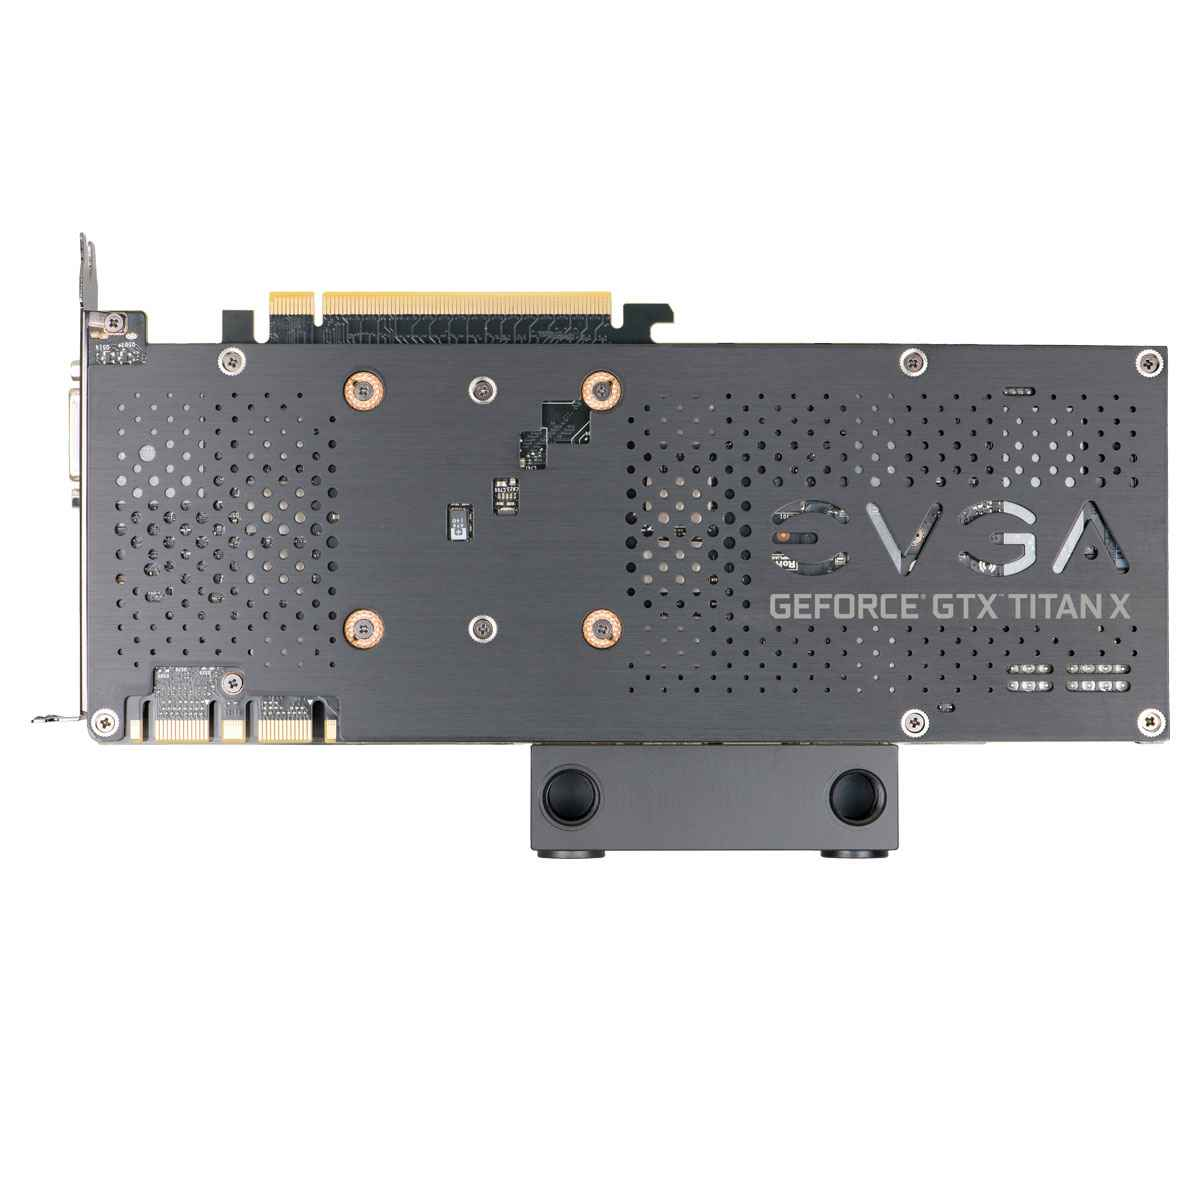 EVGA GeForce GTX TITAN X Hydro Copper